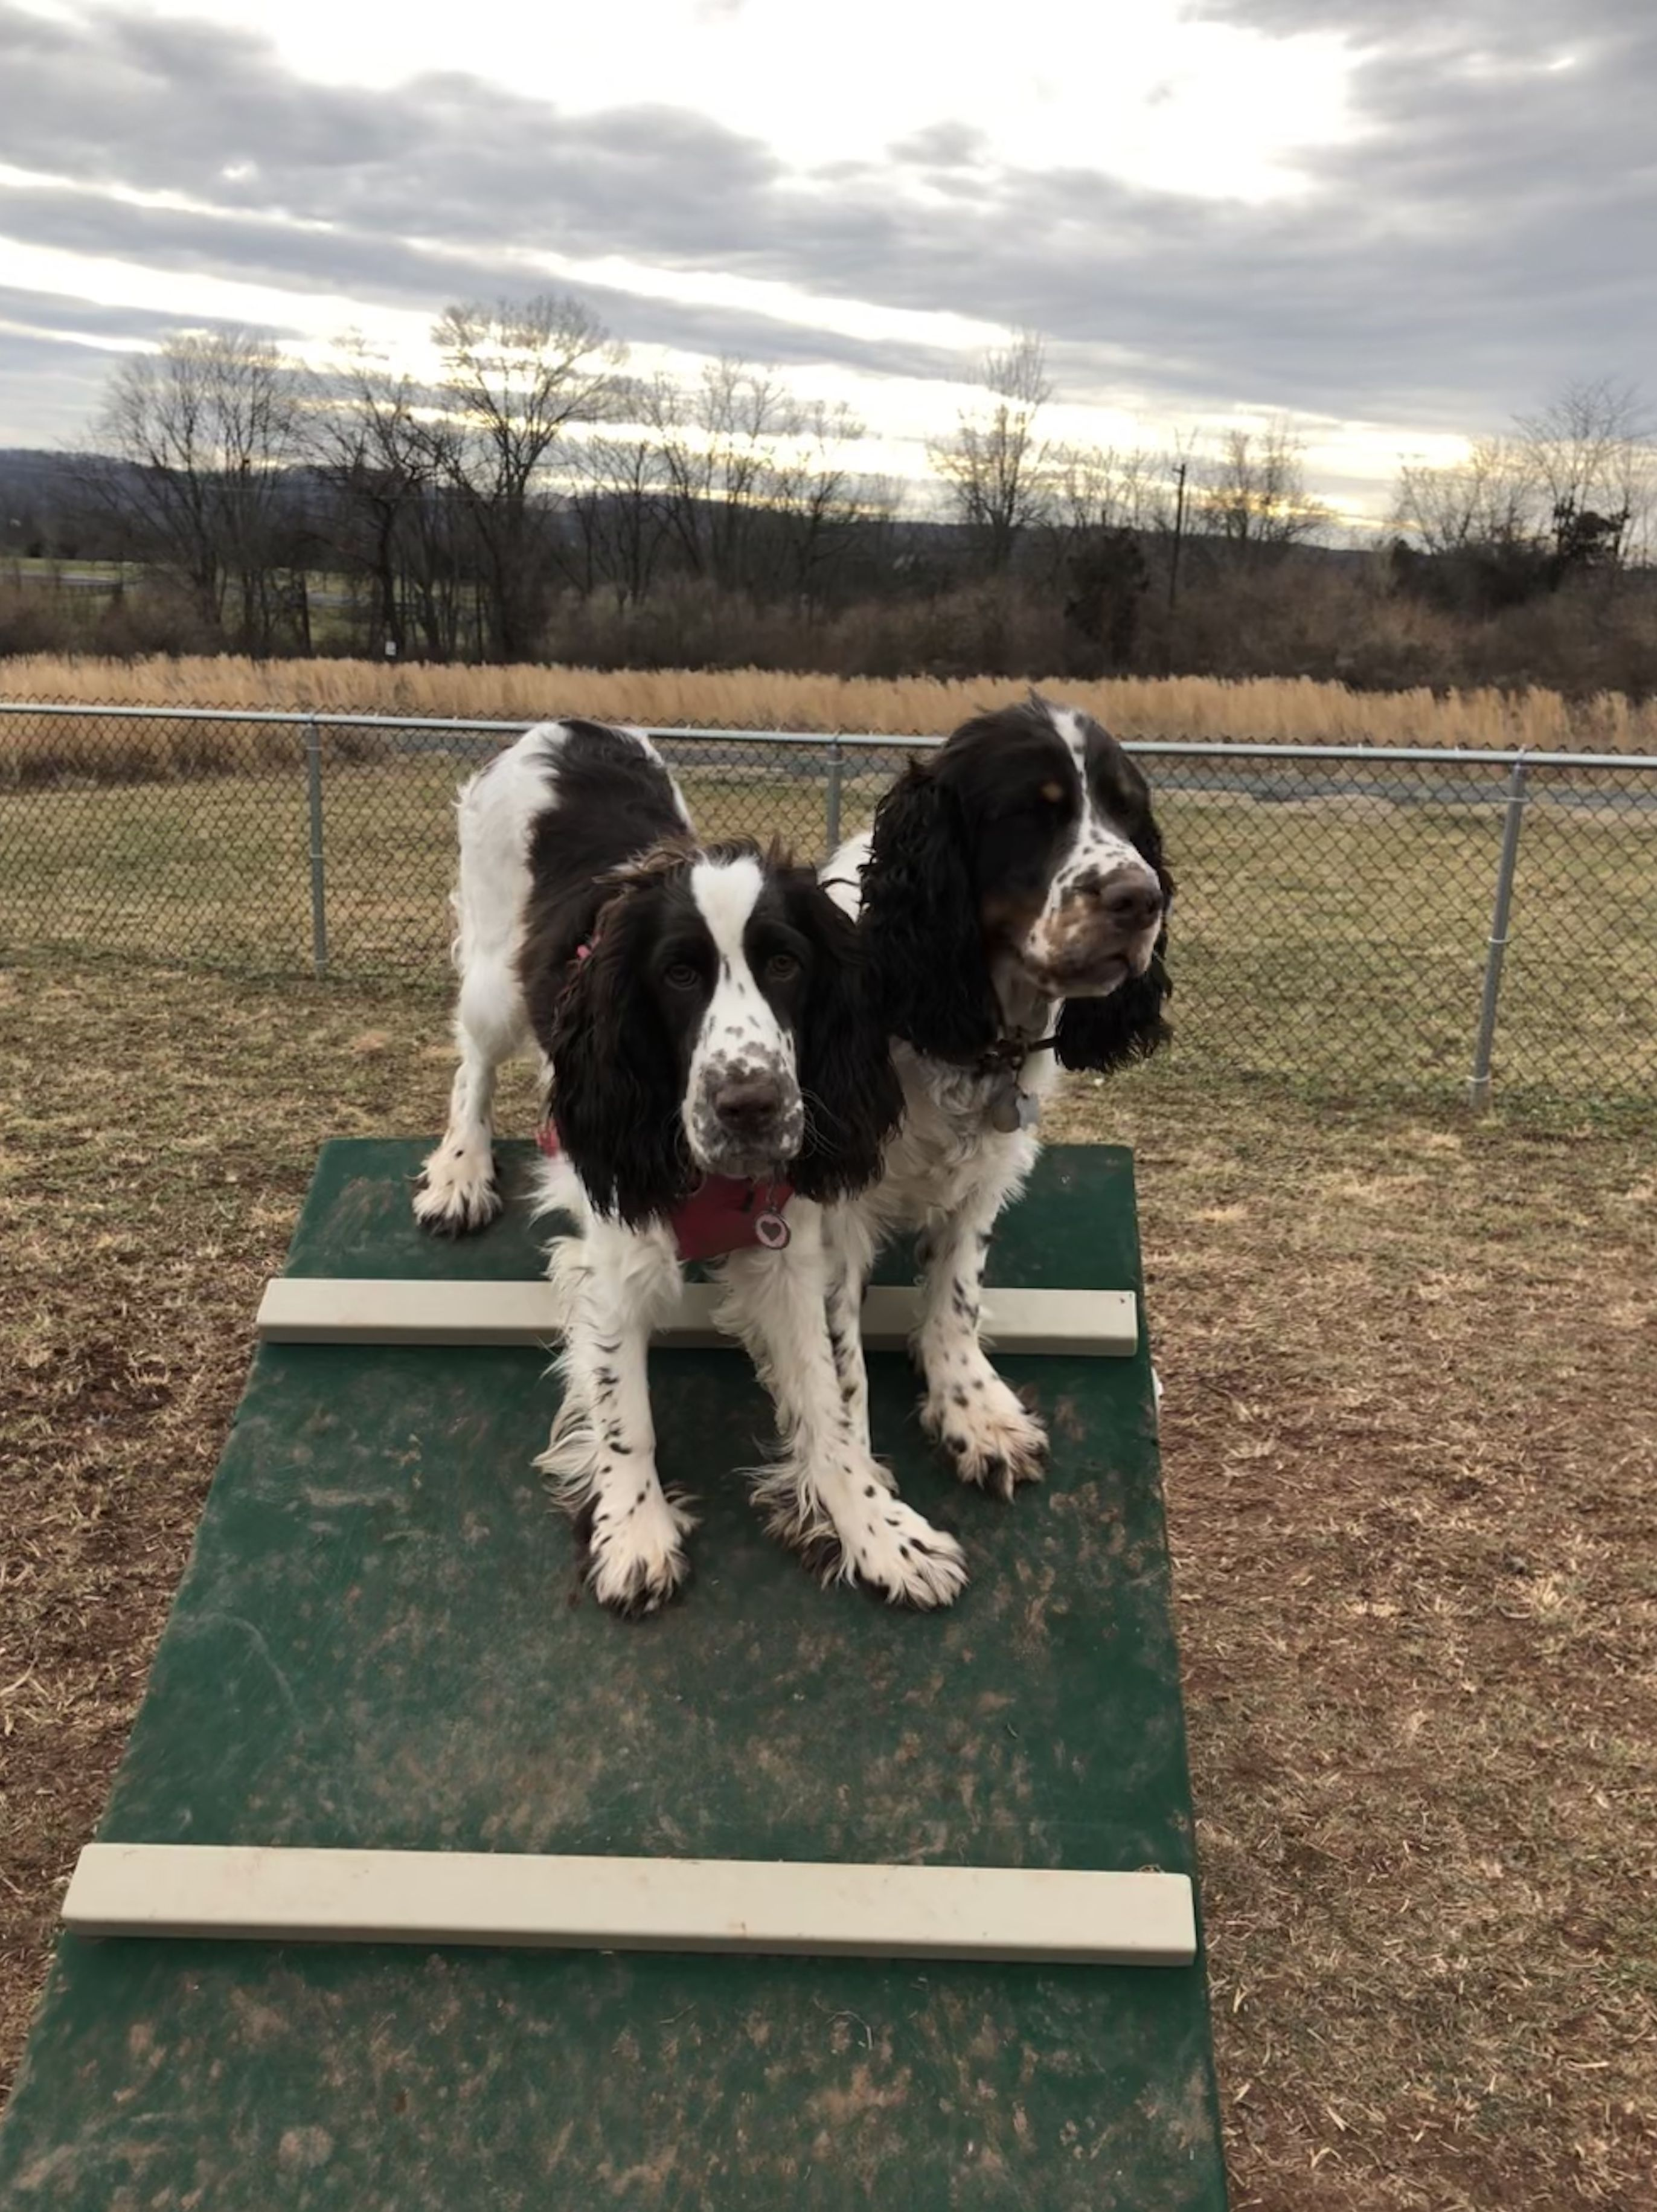 Pin By Daniela Johnson On Phoebe And Other Springers Animals Spaniel Dogs